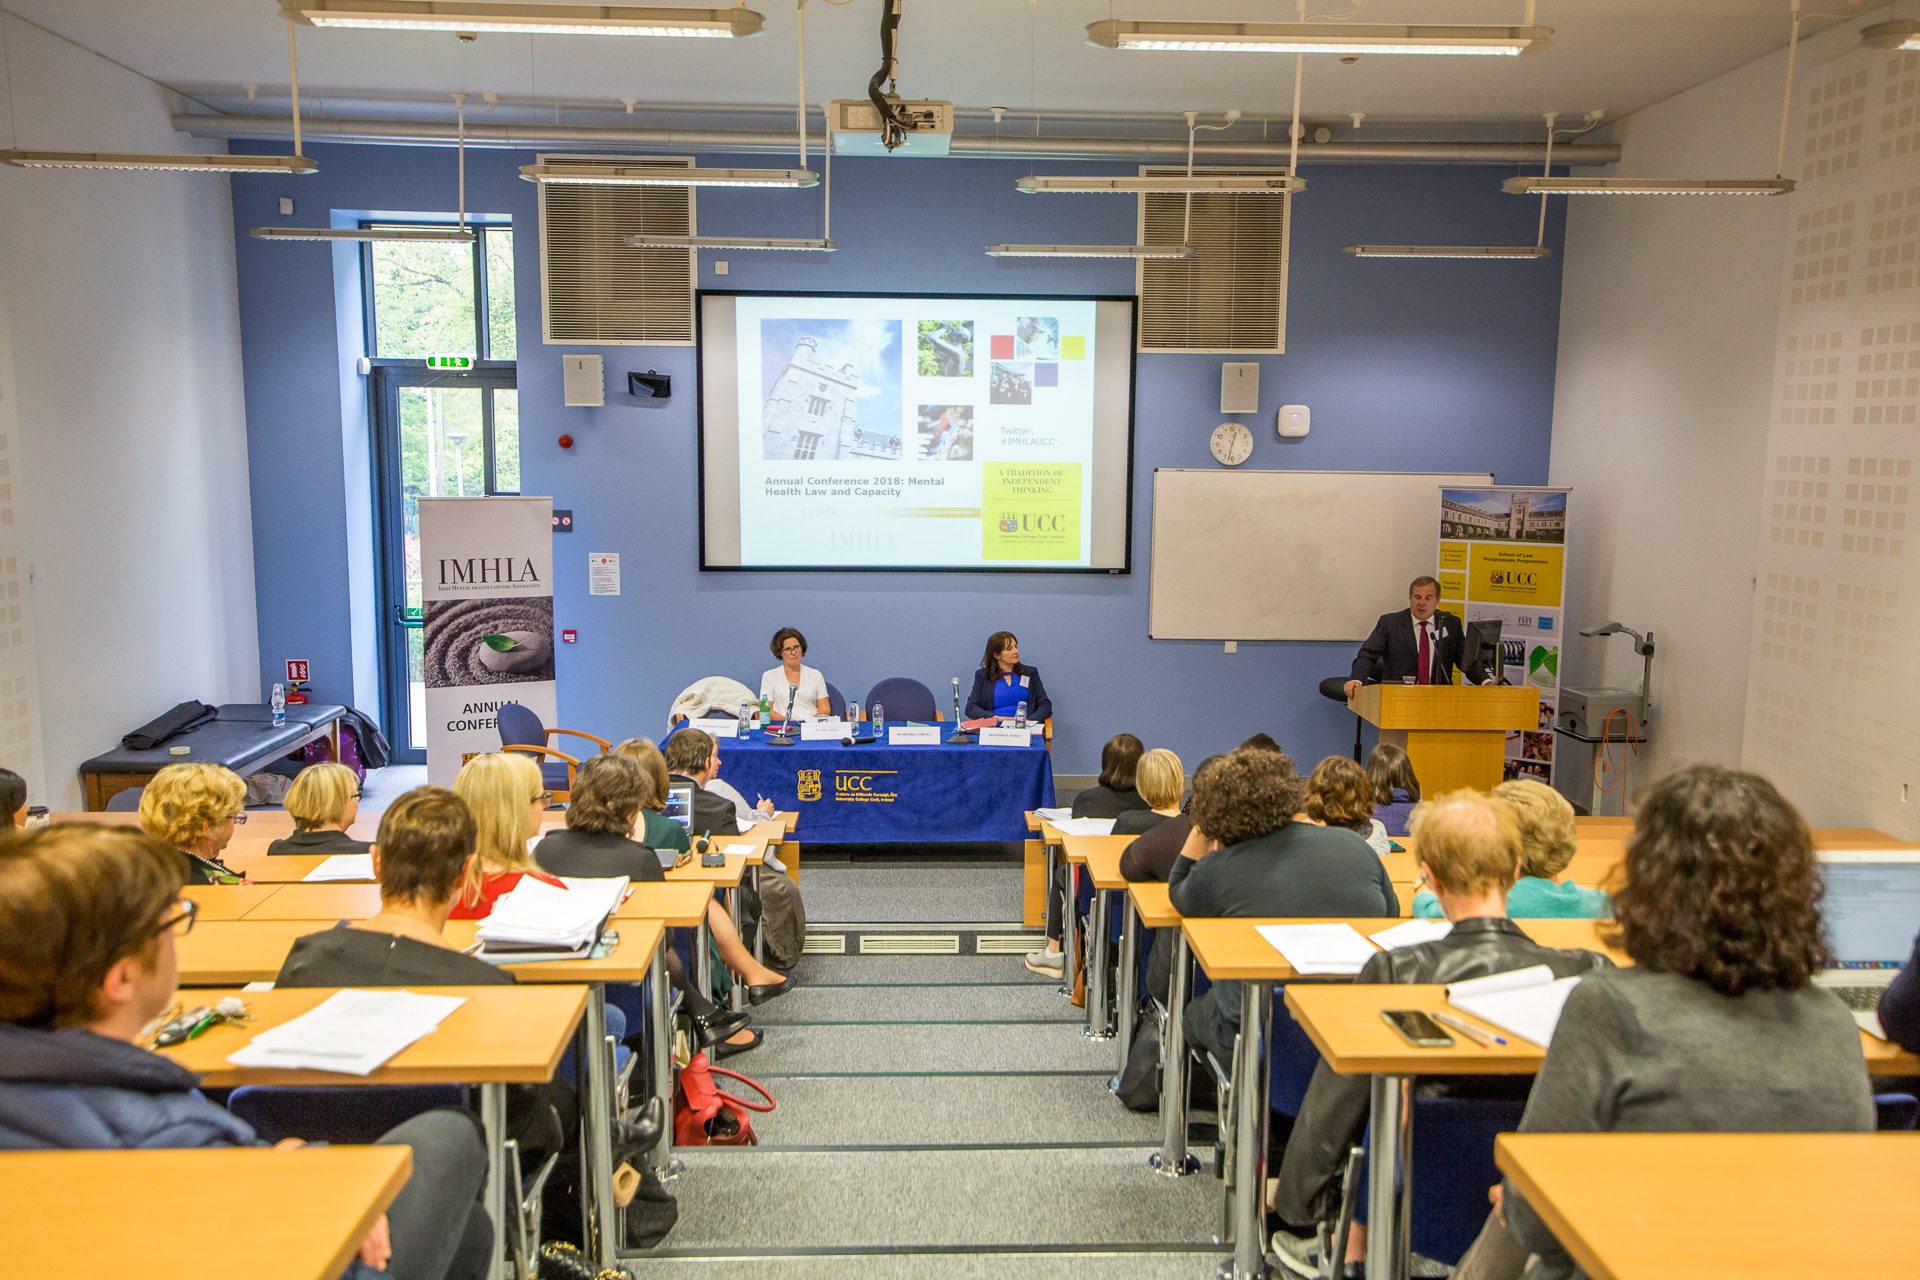 Developments in Mental Health Law Discussed at School of Law Conference